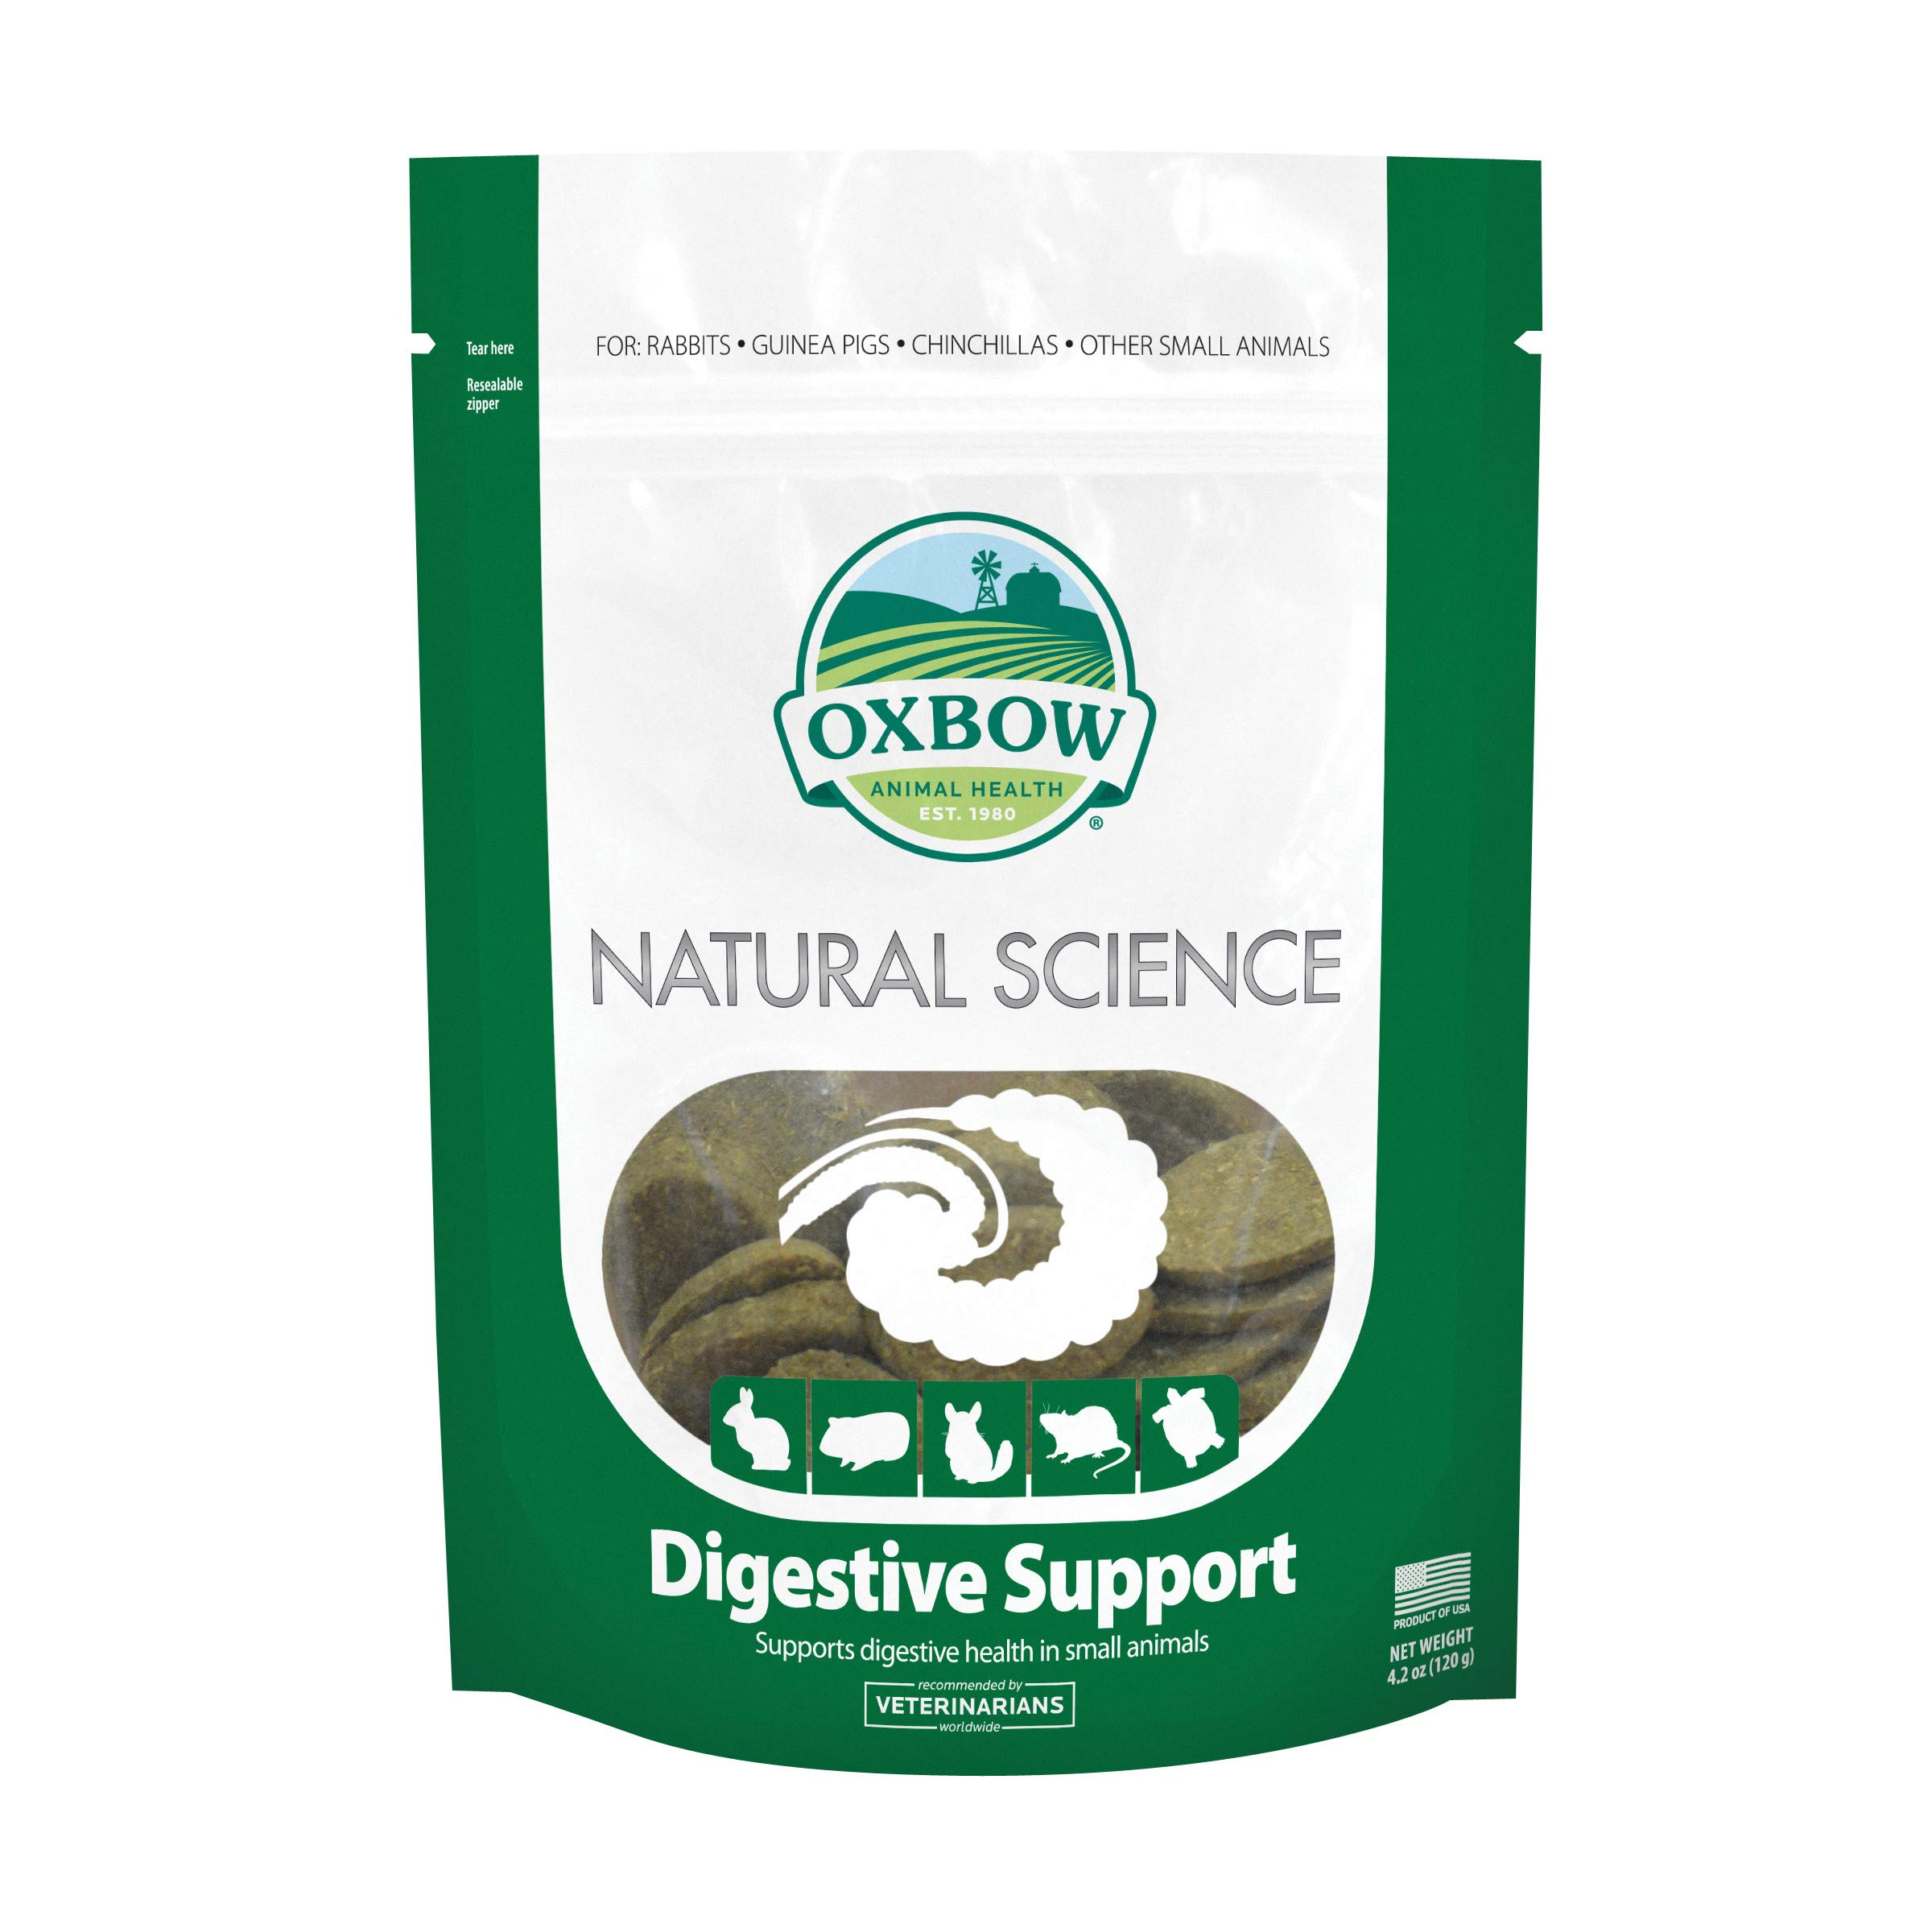 Oxbow Natural Science Digestive Supplement - High Fiber Supports Digestive Health in Small Animals, 4.2 oz.